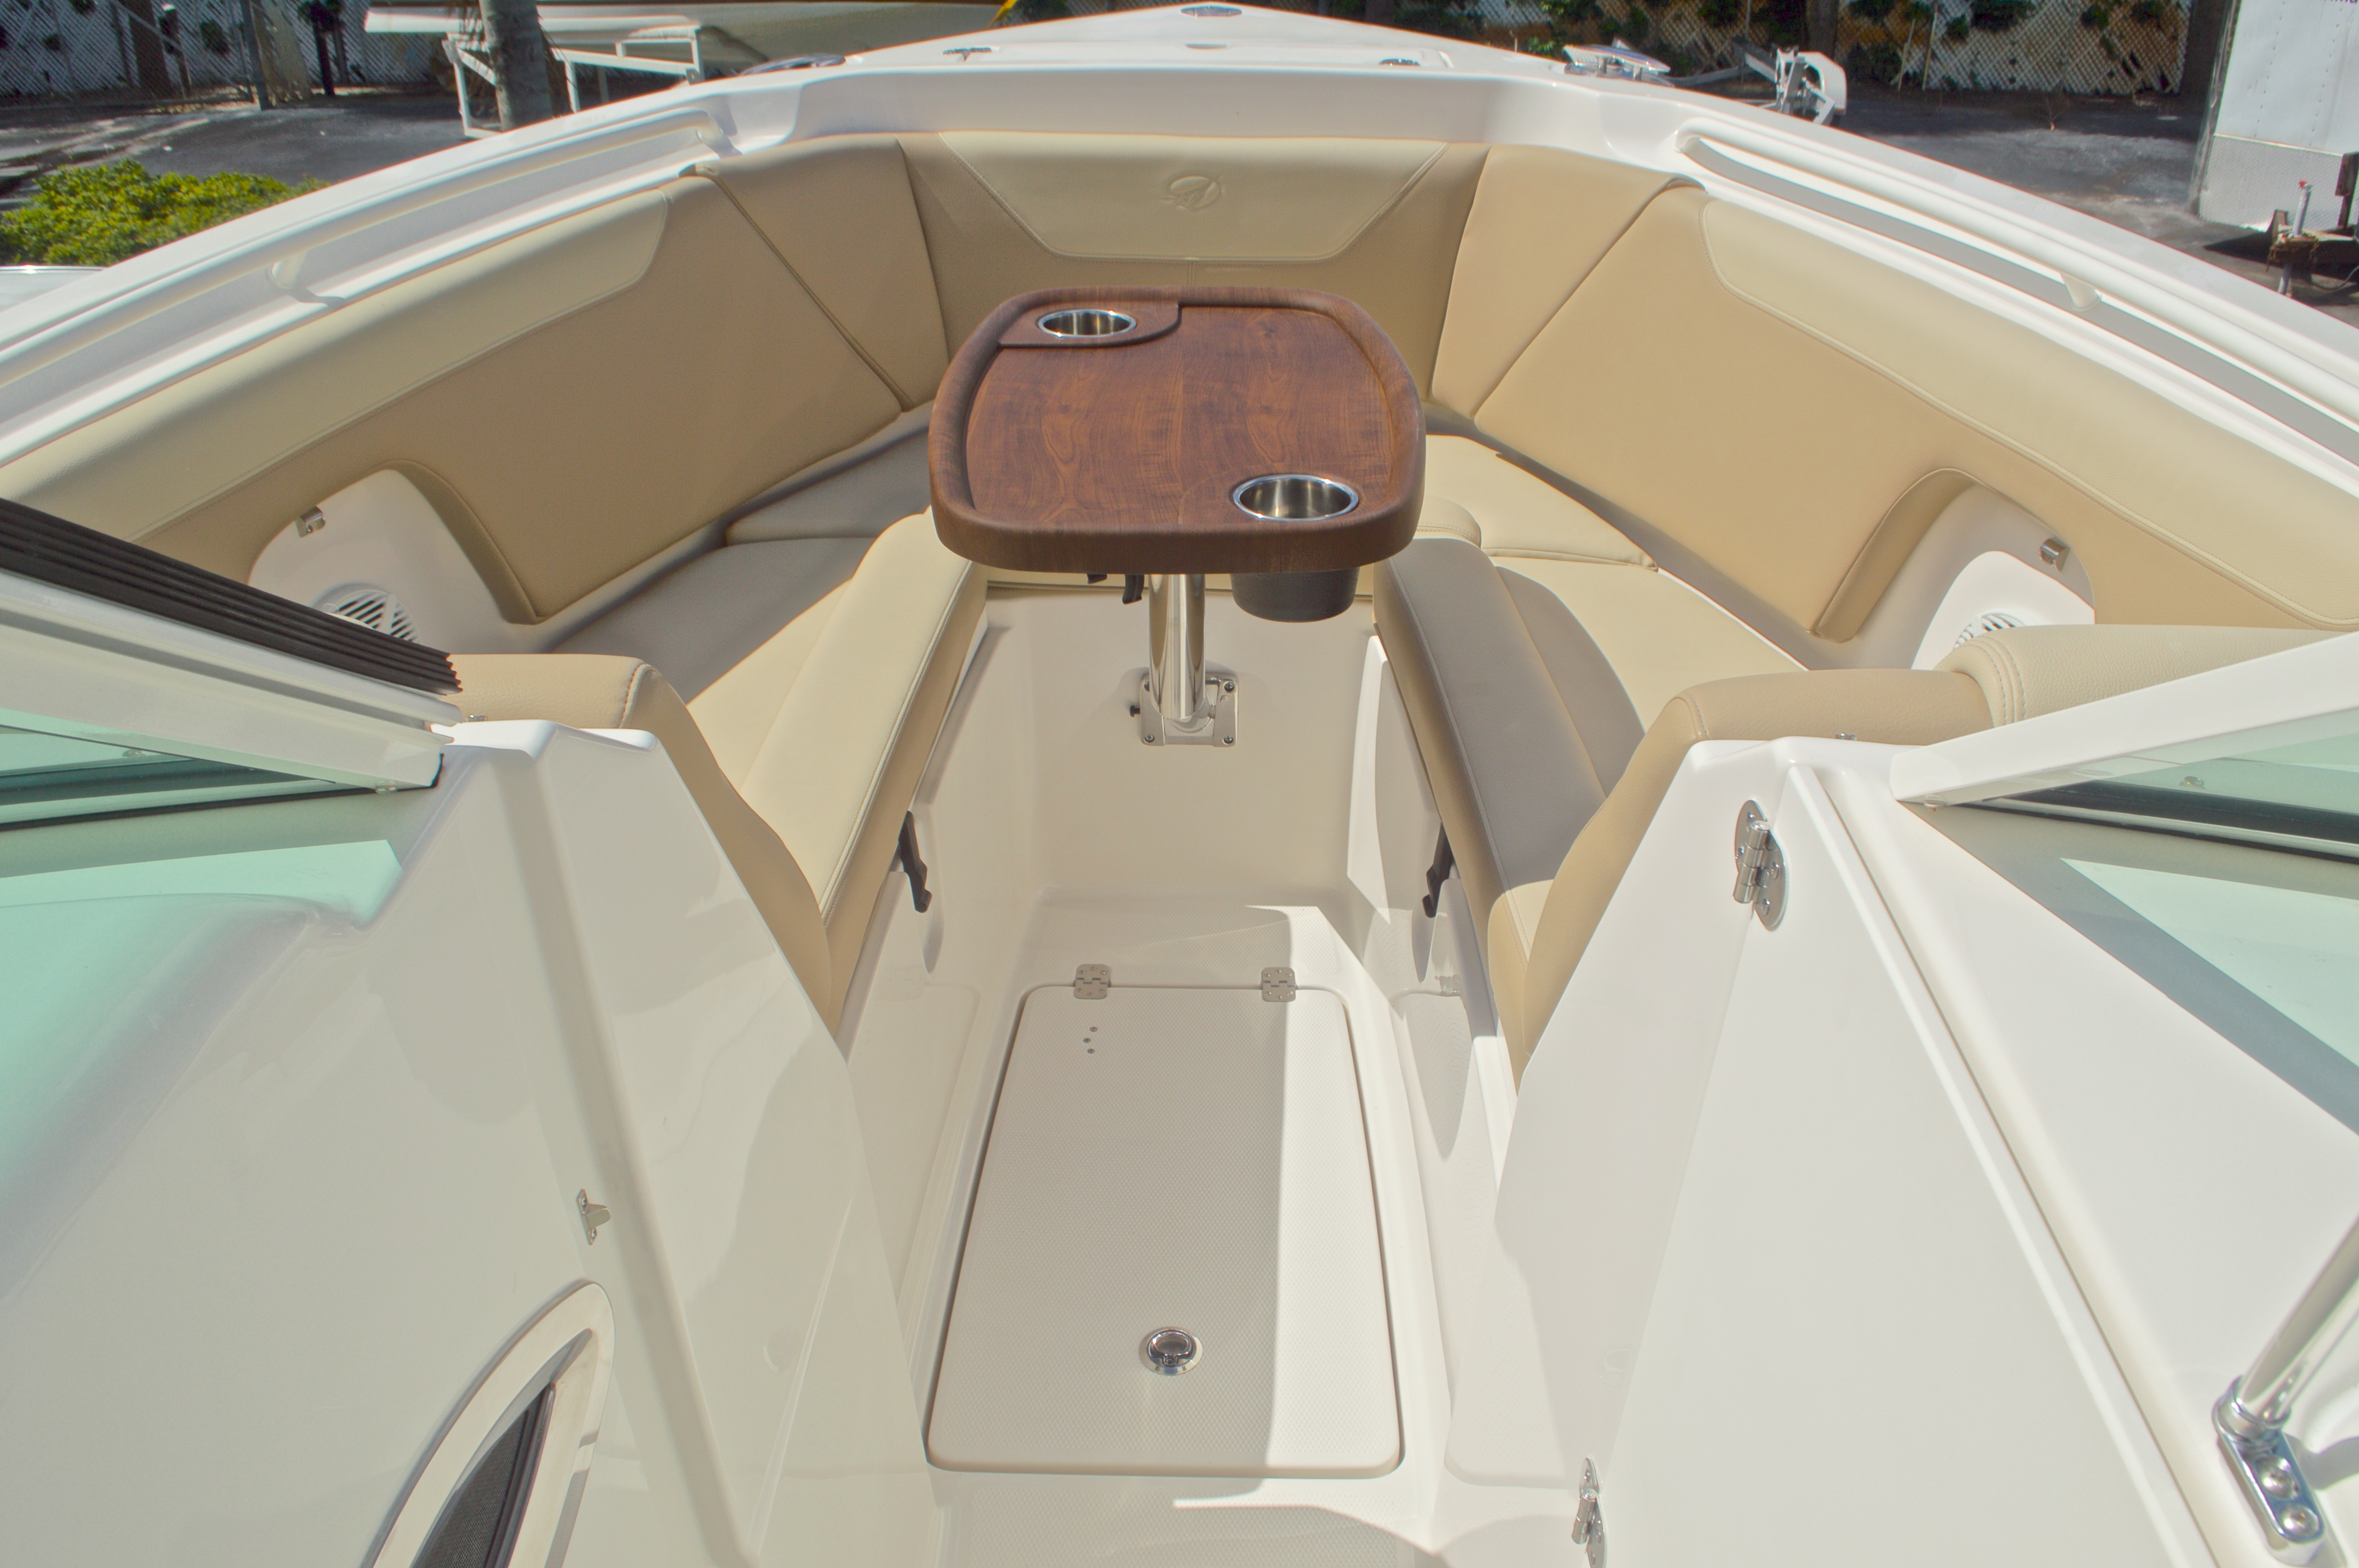 Thumbnail 59 for New 2017 Sailfish 275 Dual Console boat for sale in West Palm Beach, FL